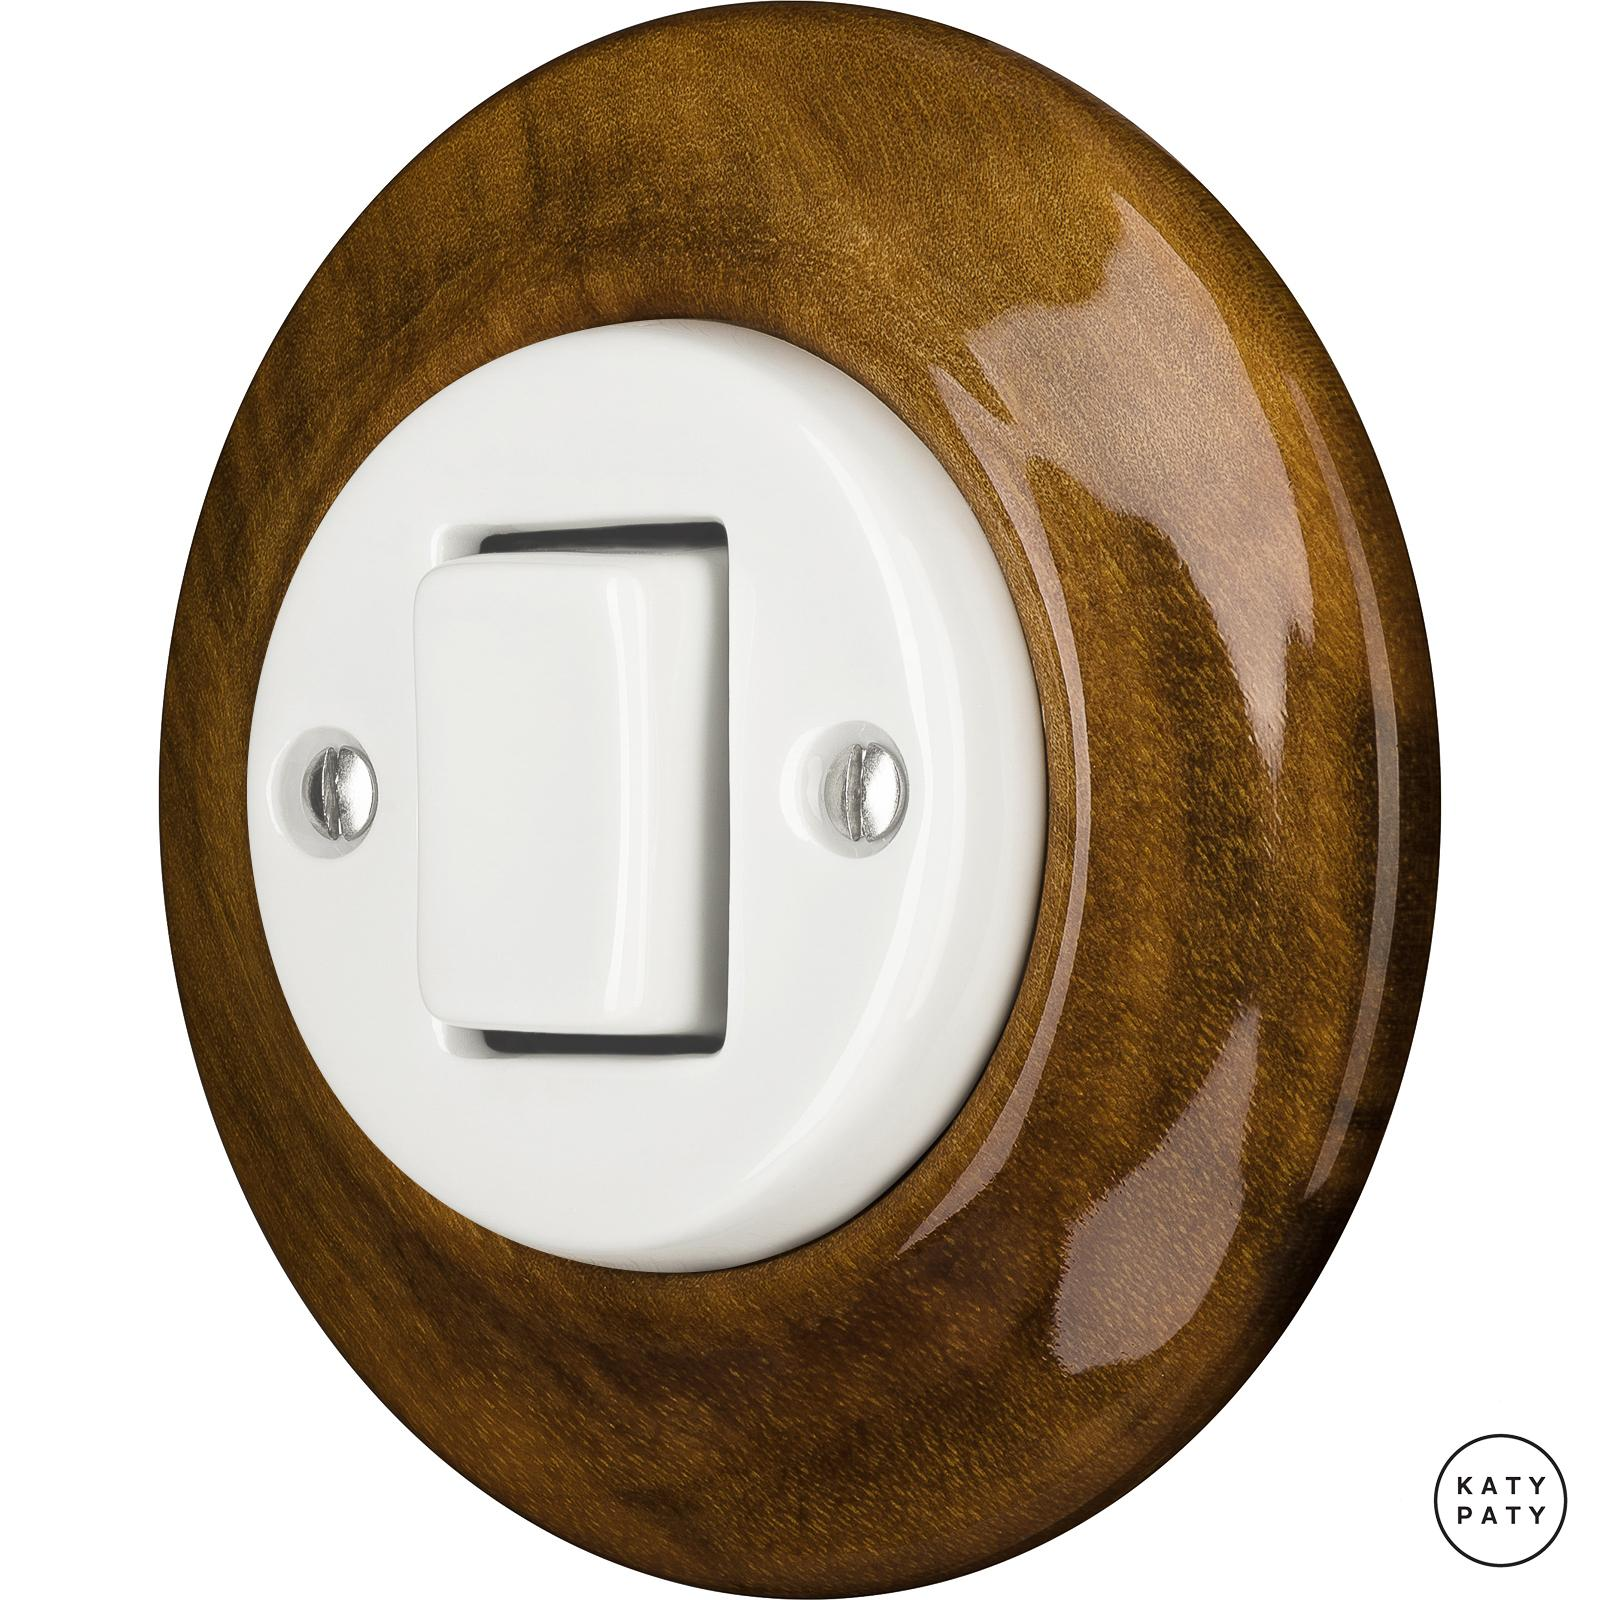 Porcelain switches - 1 key - FAT ()  - NUC MAG | Katy Paty